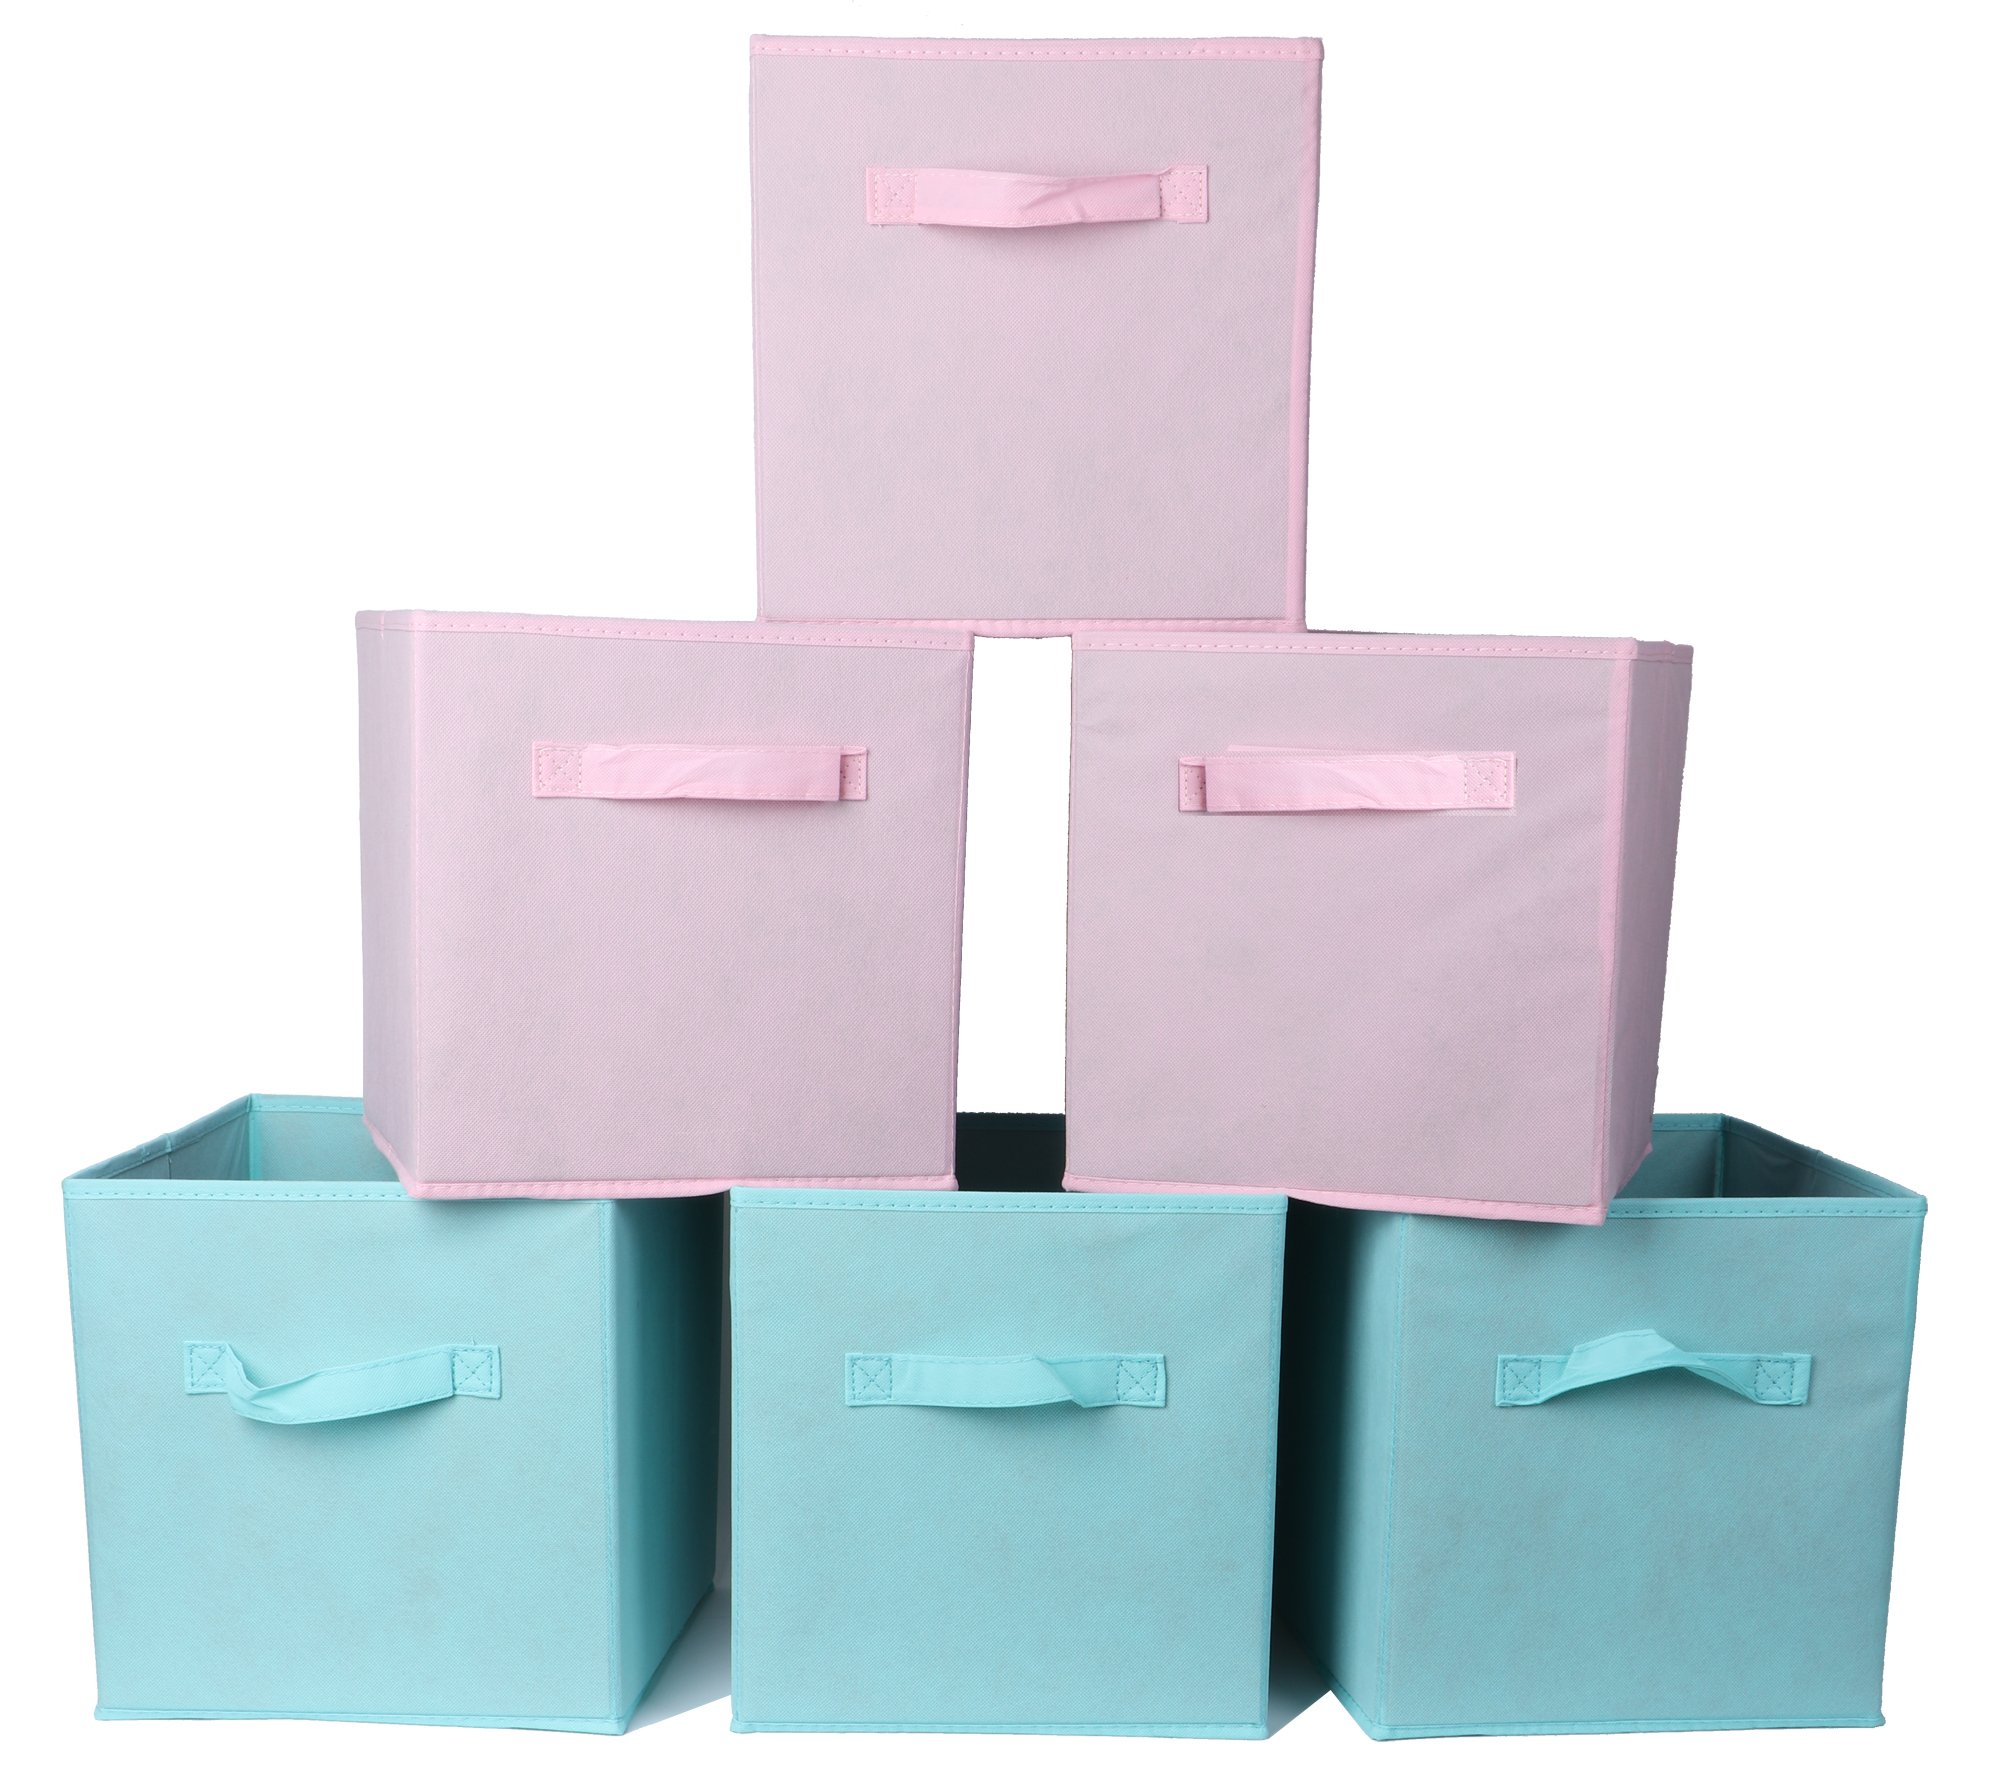 AzxecVcer Storage Bins Non-woven Fabric Foldable Organizer Basket Polyester Canvas Storage Box For Kids Toys,Clothes,Shelves,6 Pack (3 pink +3 sky blue)